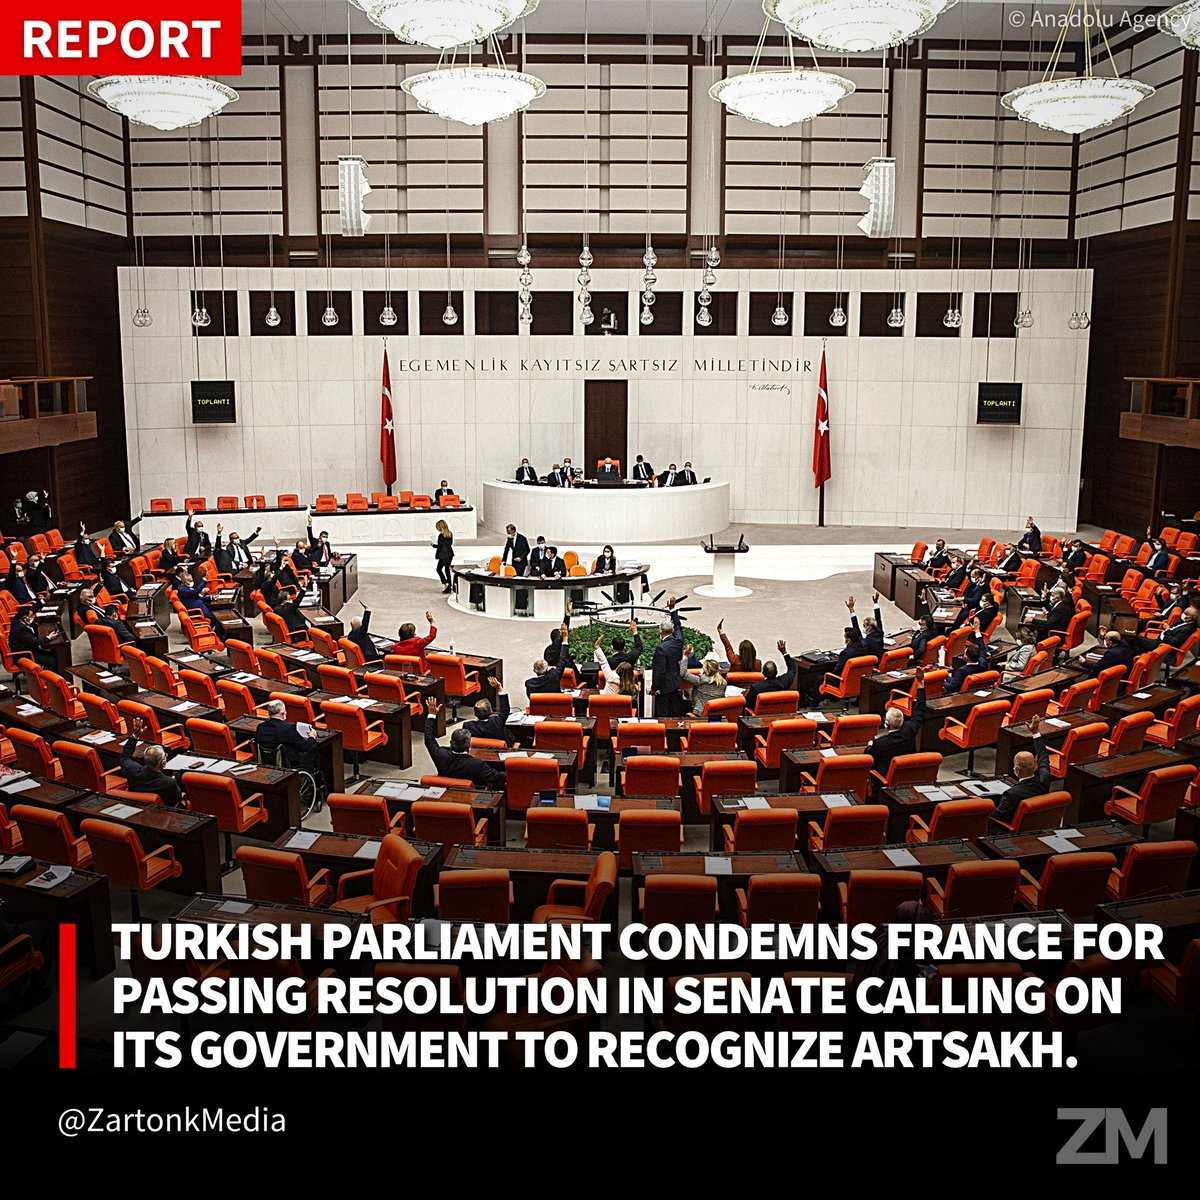 Turkish Parliament Condemns France For Passing Resolution In Senate Calling On Its Government To Recognize Artsakh. https://t.co/Zhr2KeMbM8